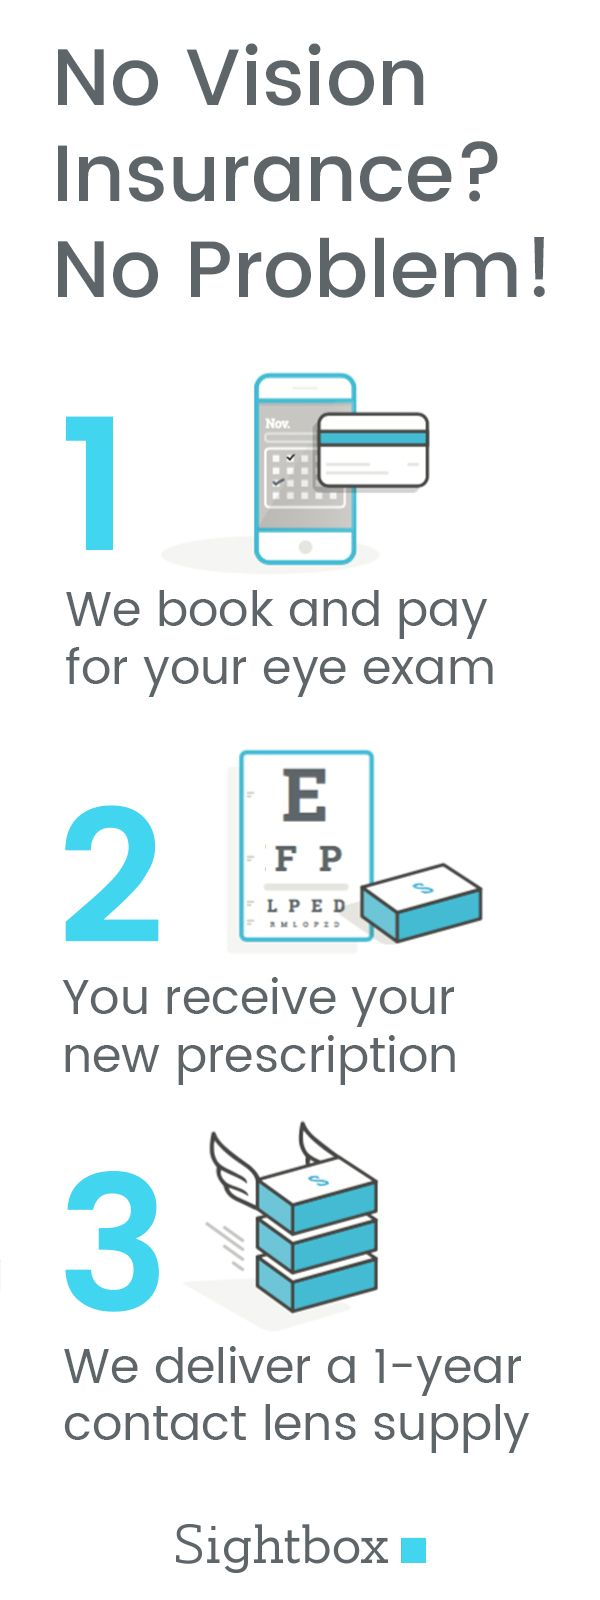 Wear Contacts We Book And Pay For Your Eye Exam Then Deliver A 1